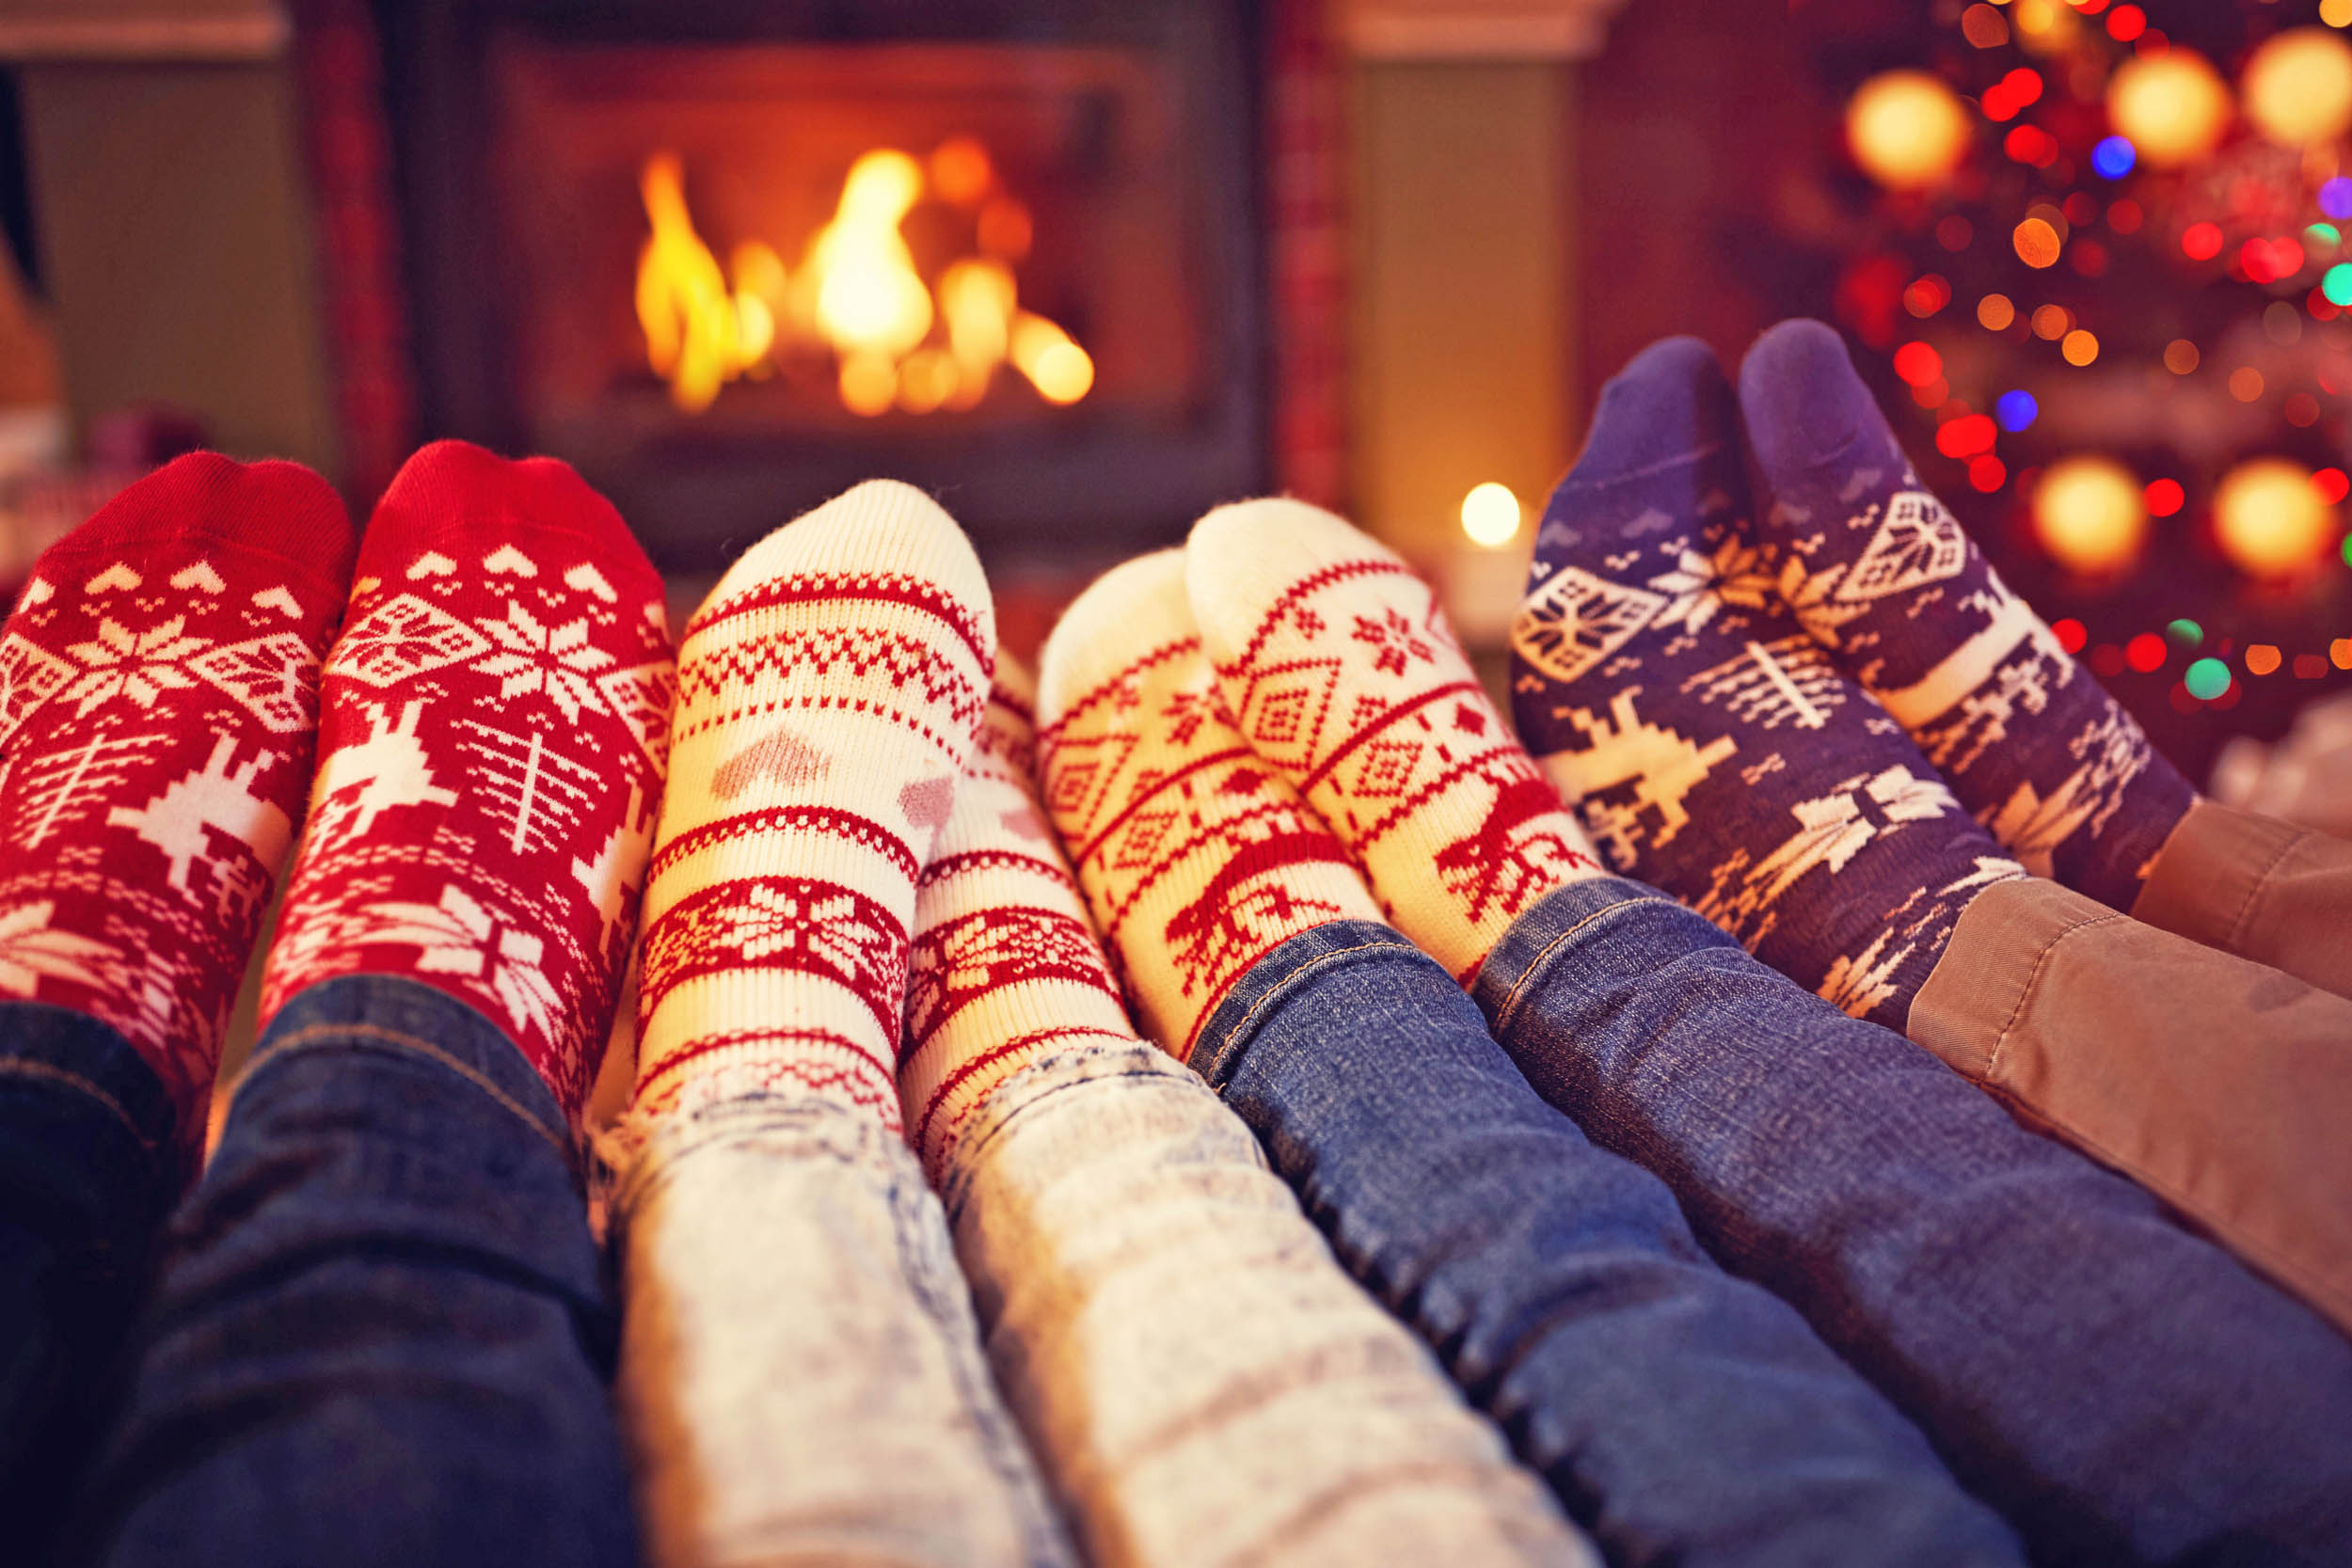 Christmas socks in your stocking are harming the environment